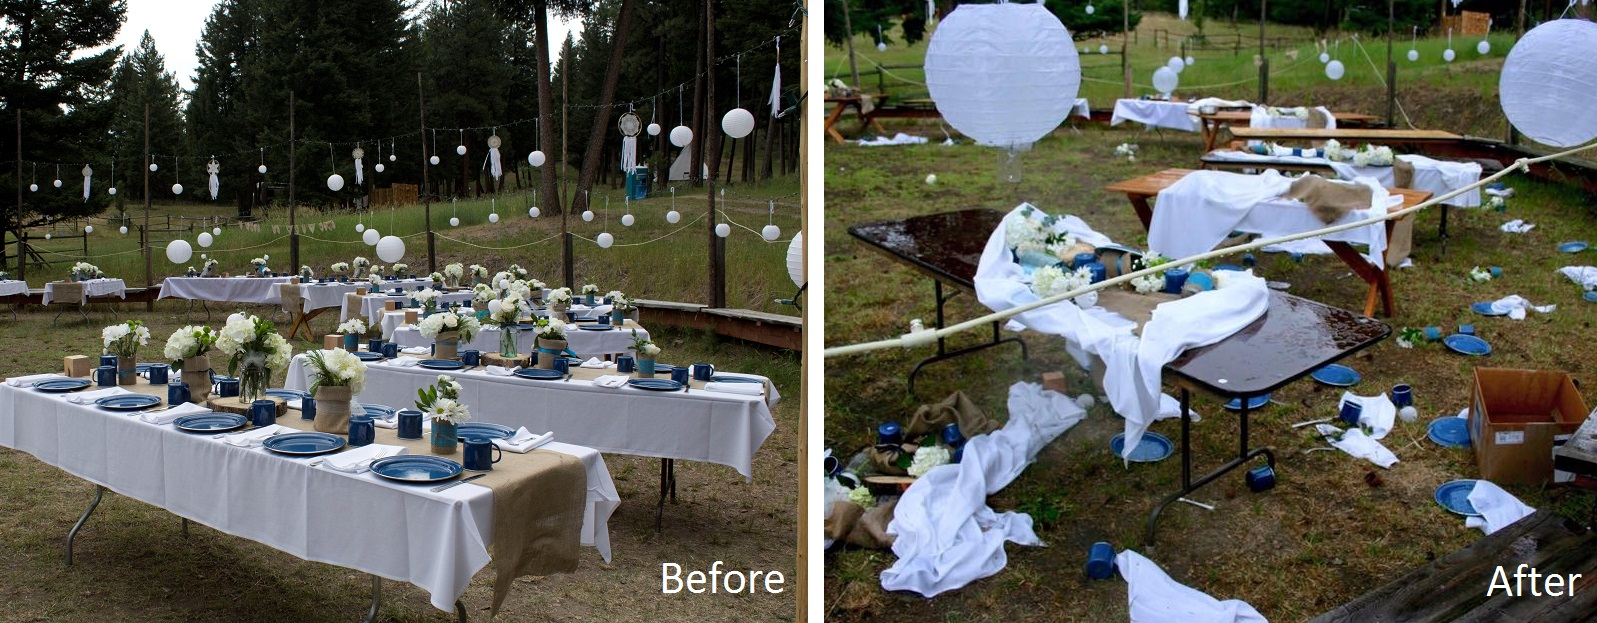 Tables Beforeafter Hc